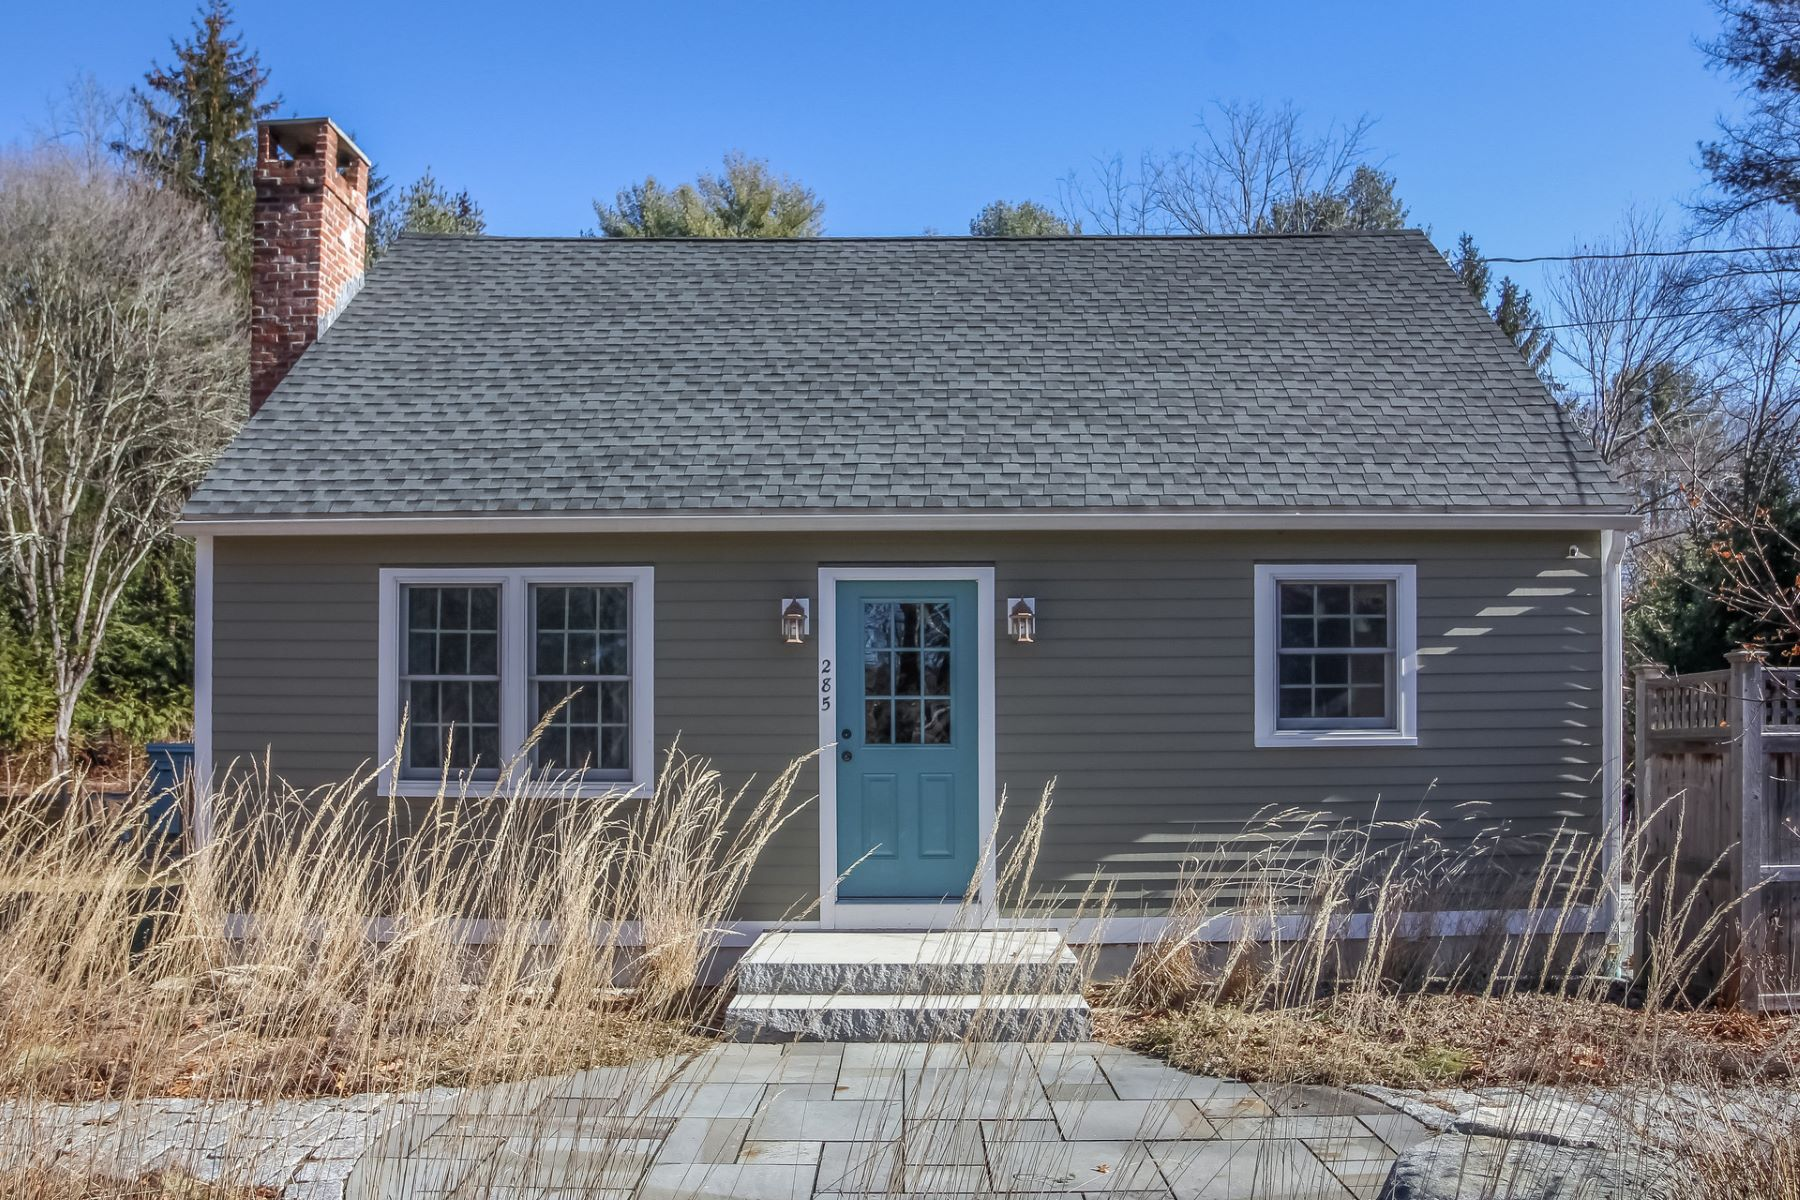 独户住宅 为 销售 在 Move Right in to this updated Cape Cod home! 285 Roast Meat Hill Road, 基林沃斯, 康涅狄格州, 06419 美国